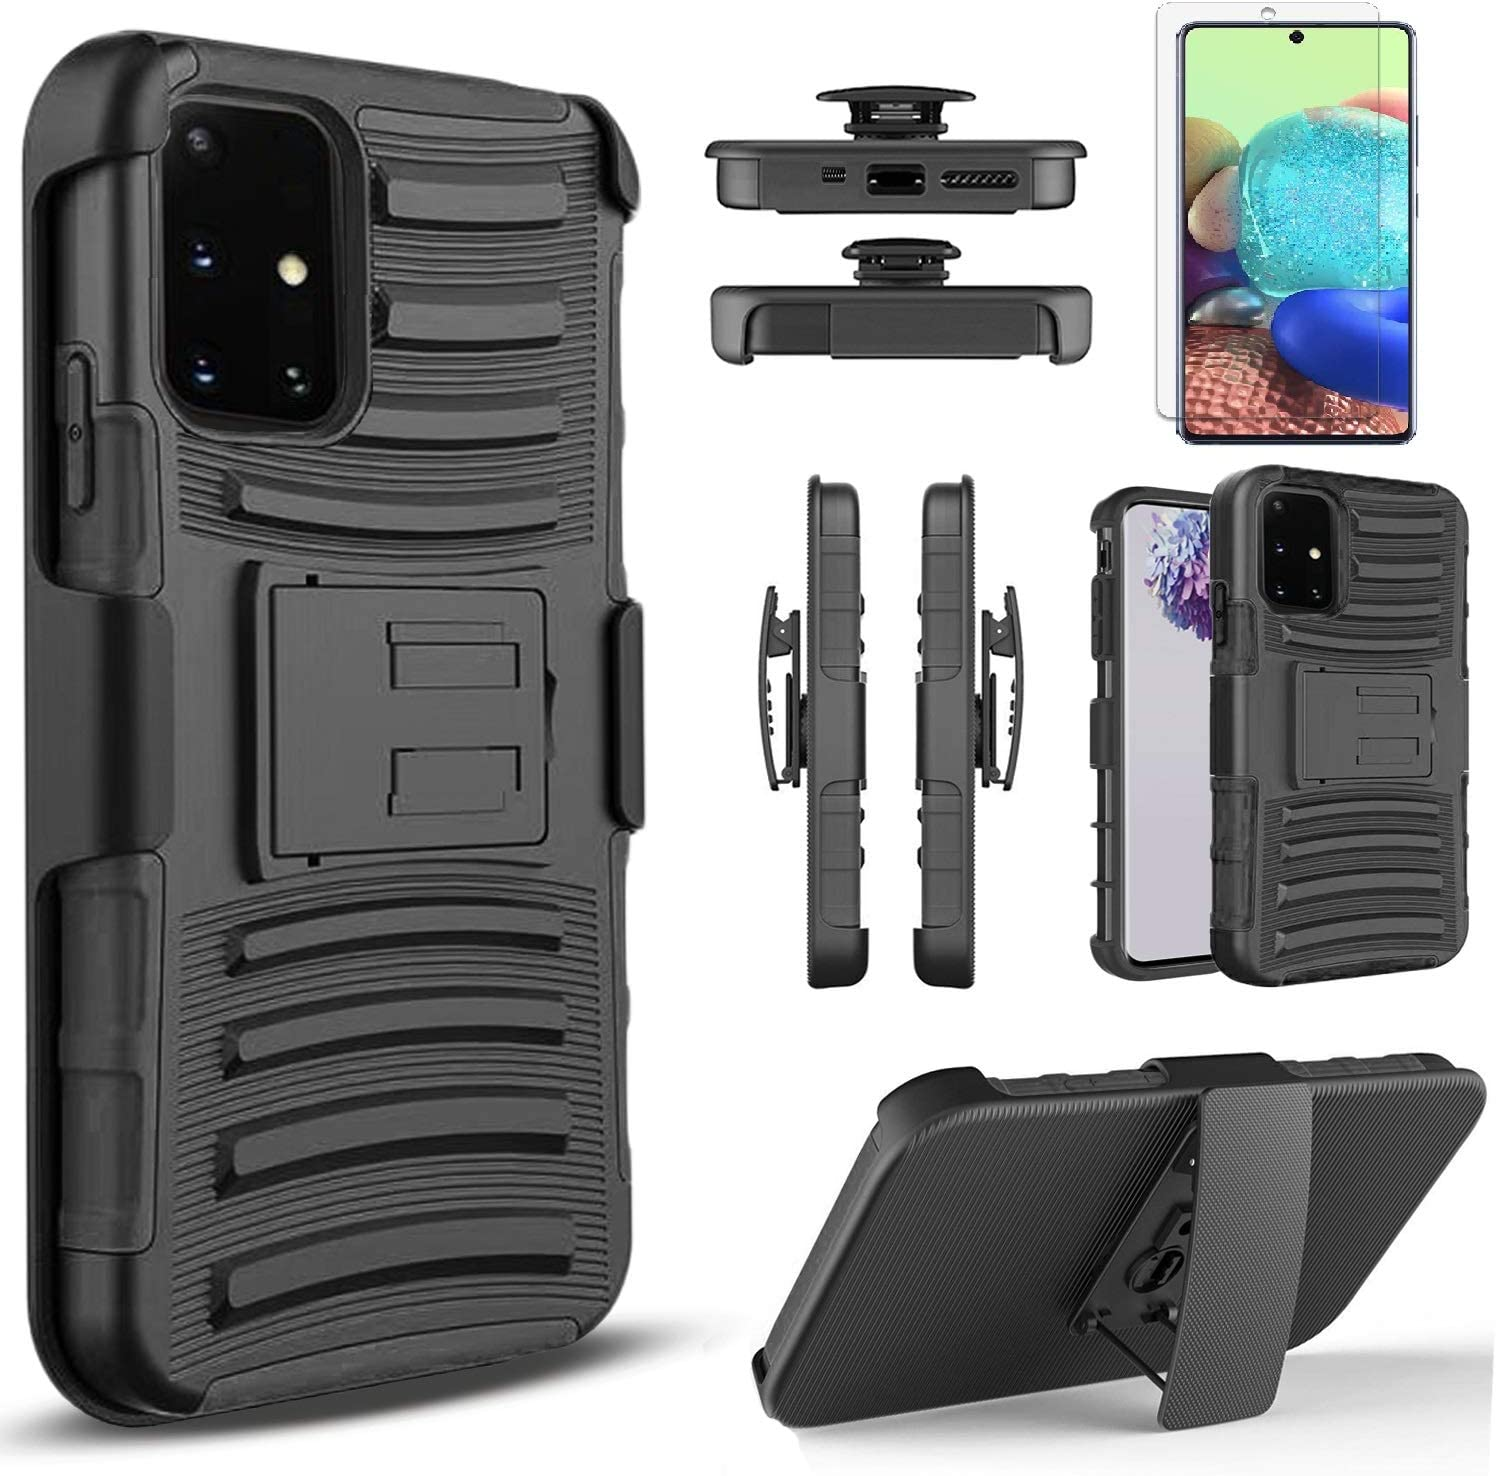 Circlemalls Compatible For -Samsung Galaxy A51 Case, [NOT FIT A51/A51 5G/A51 UW] With [Tempered Glass Screen Protector Included], Armor Heavy Duty Kickstand Cover With Belt Clip Holster - Black